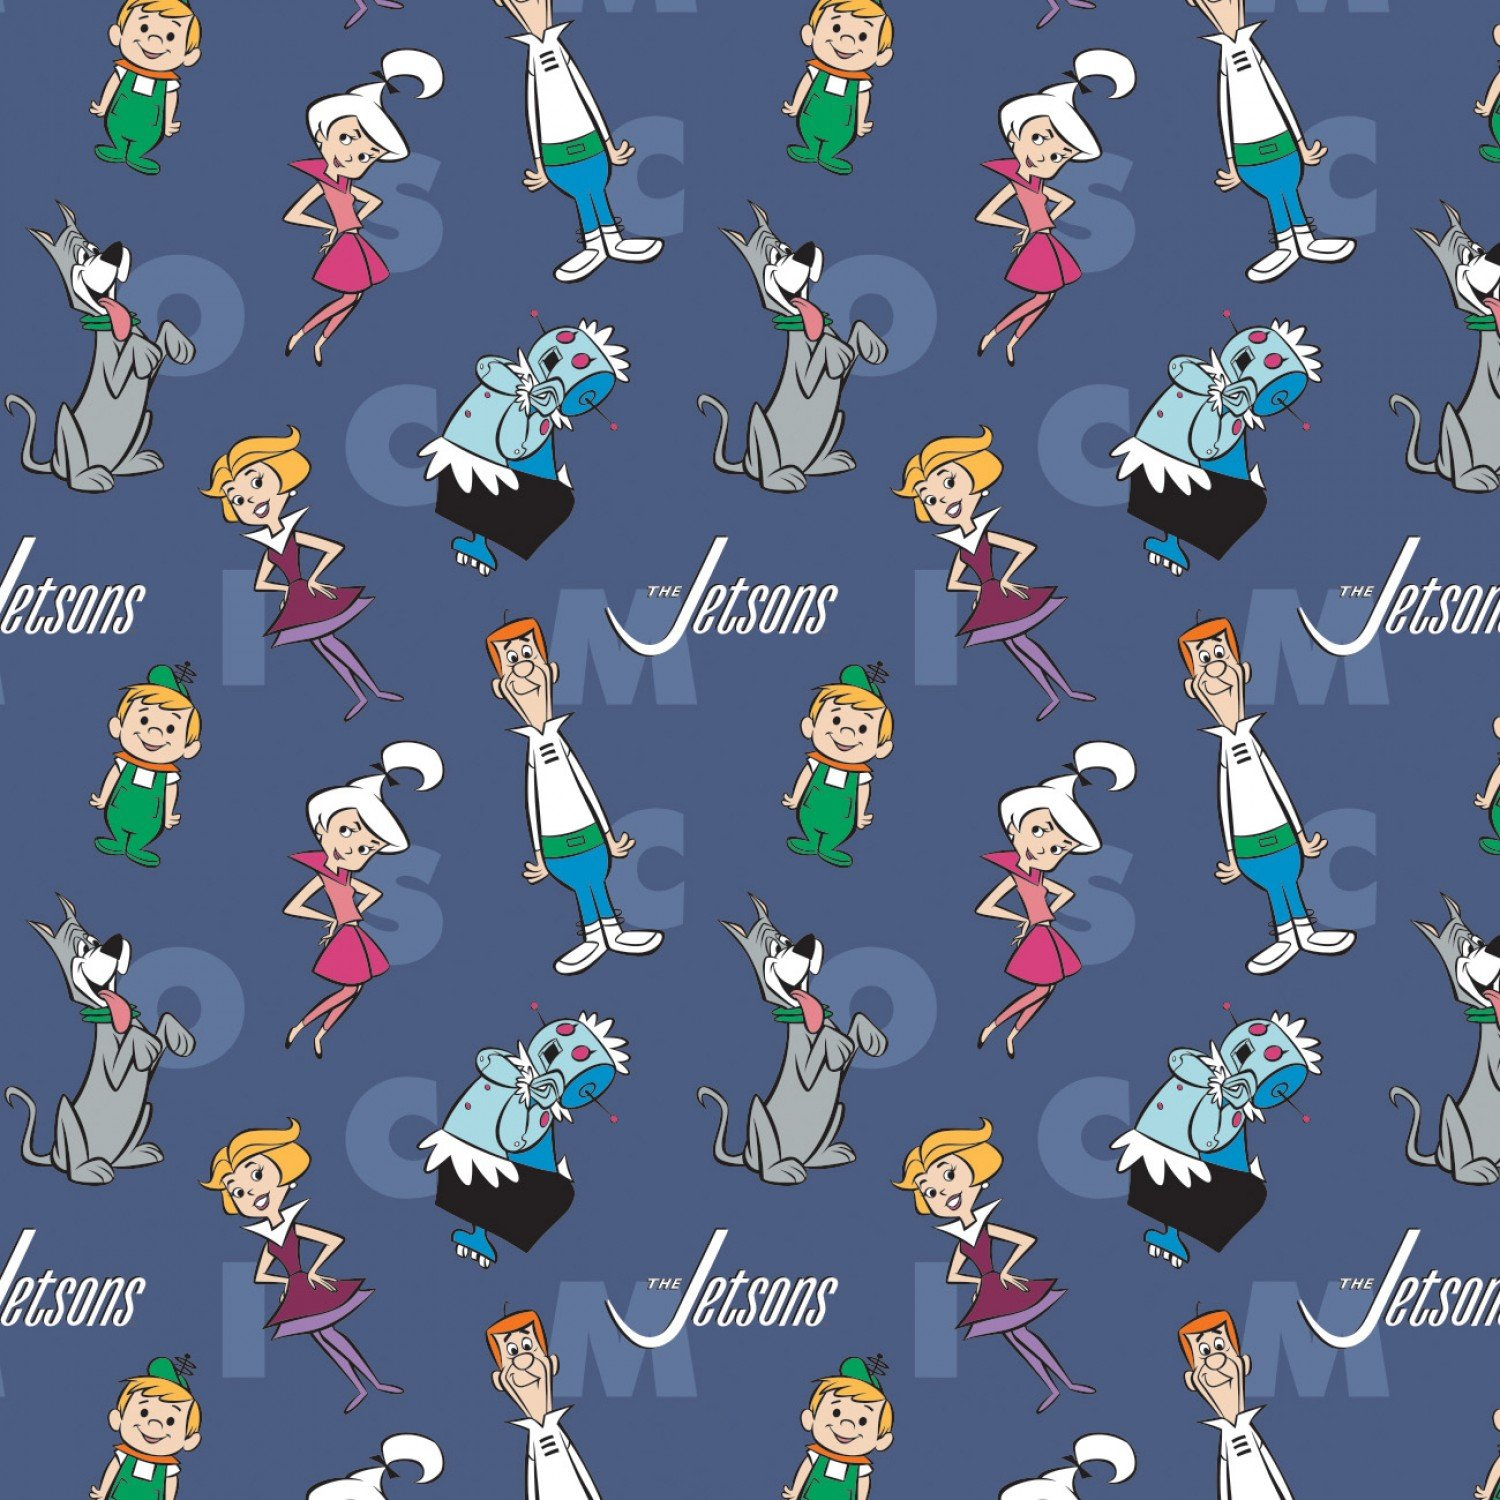 CF-The Jetsons 24080301-01 Blue - Characters & Letters